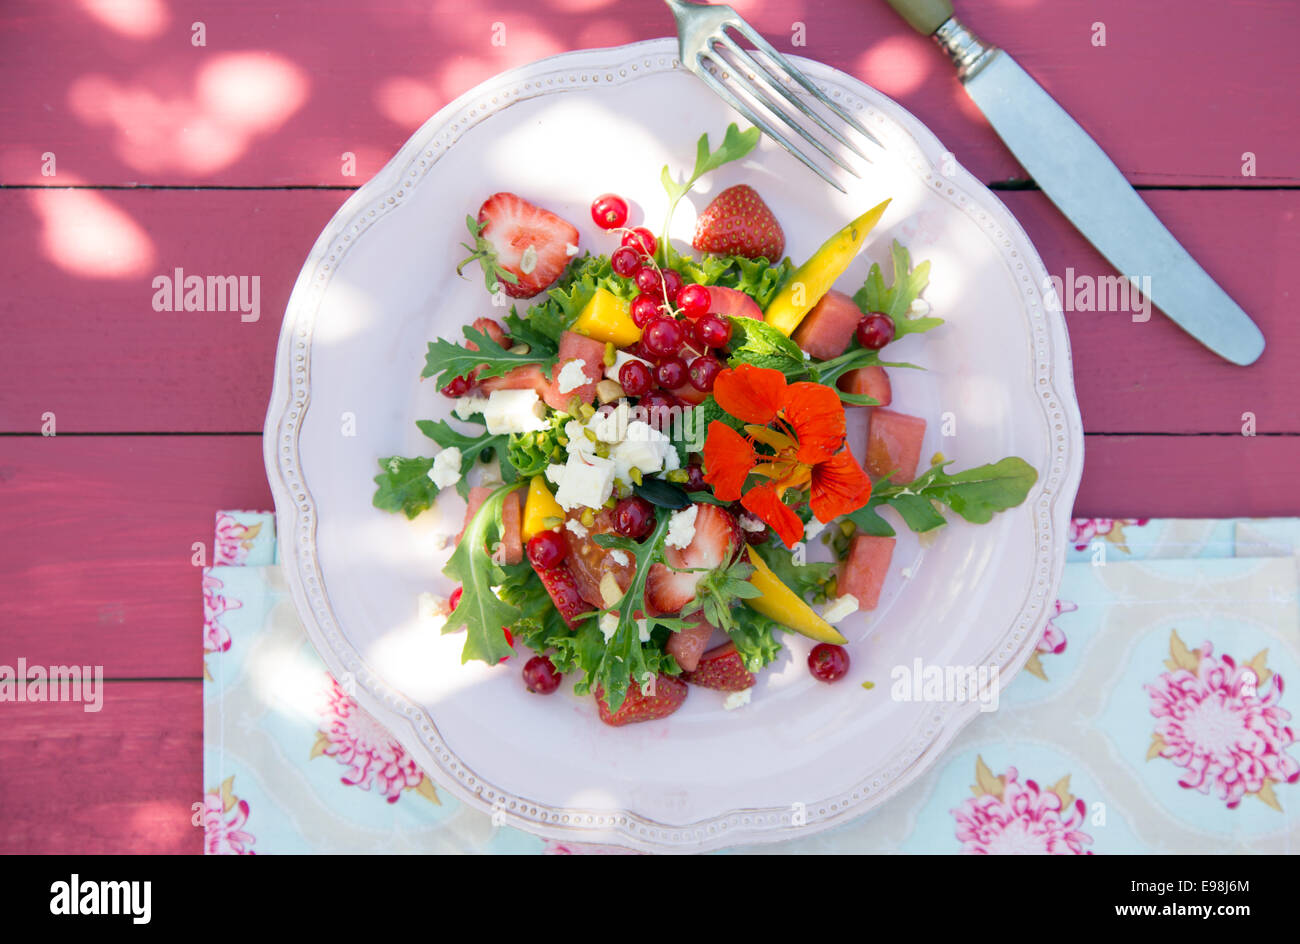 Strawberry pink flowers stock photos strawberry pink flowers stock tasty summer salad melon strawberry redcurrants and wild flowers on pink wooden background mightylinksfo